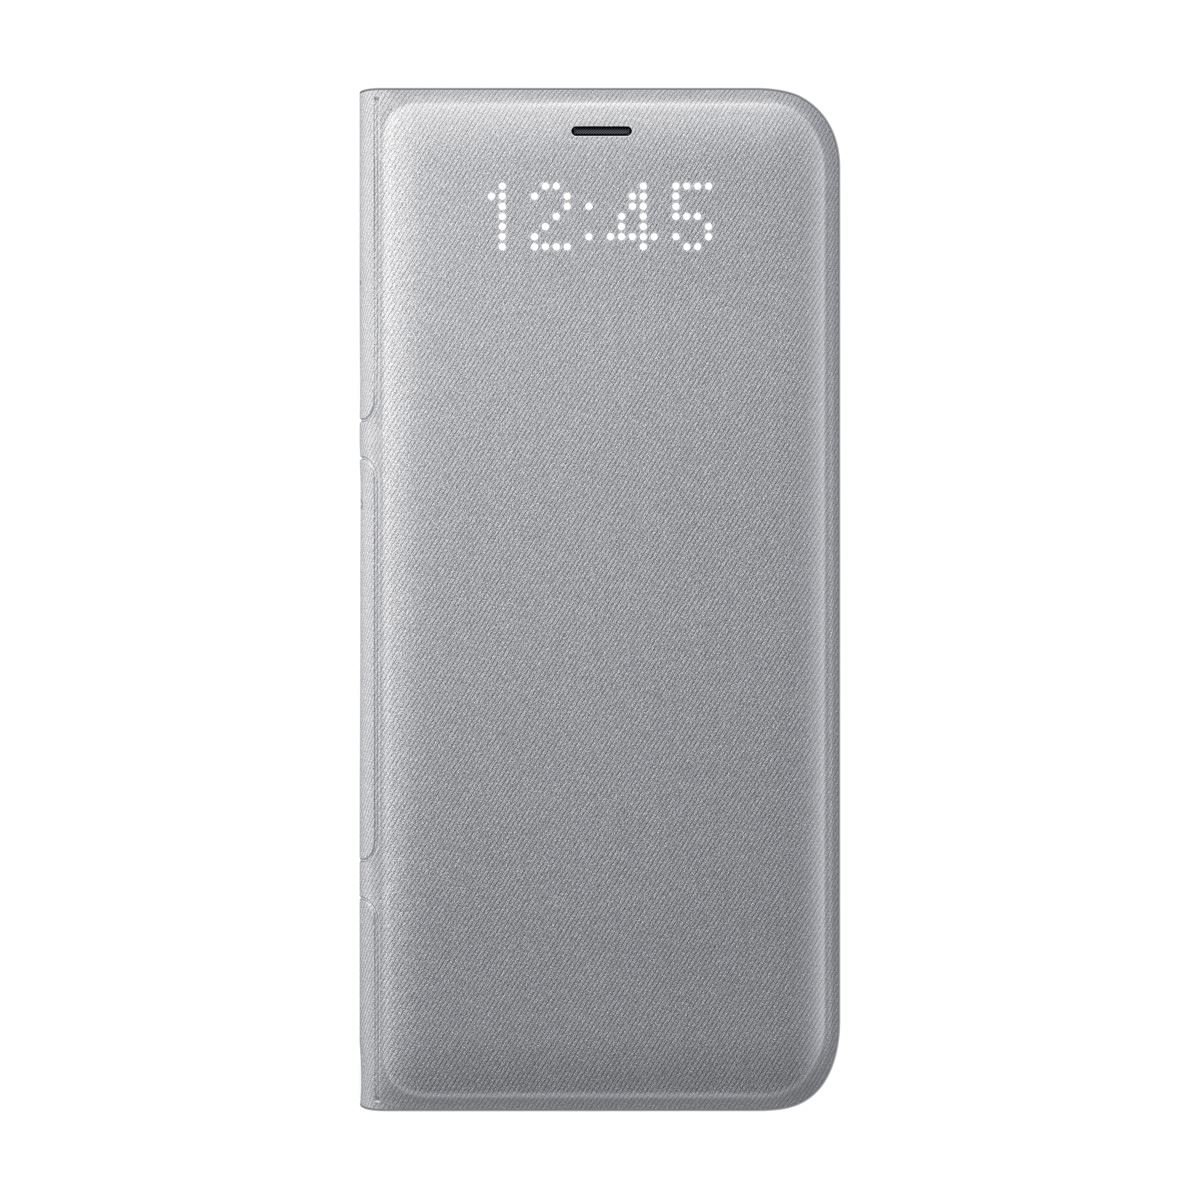 Funda s8 edge plata led view cover  - Sanborns